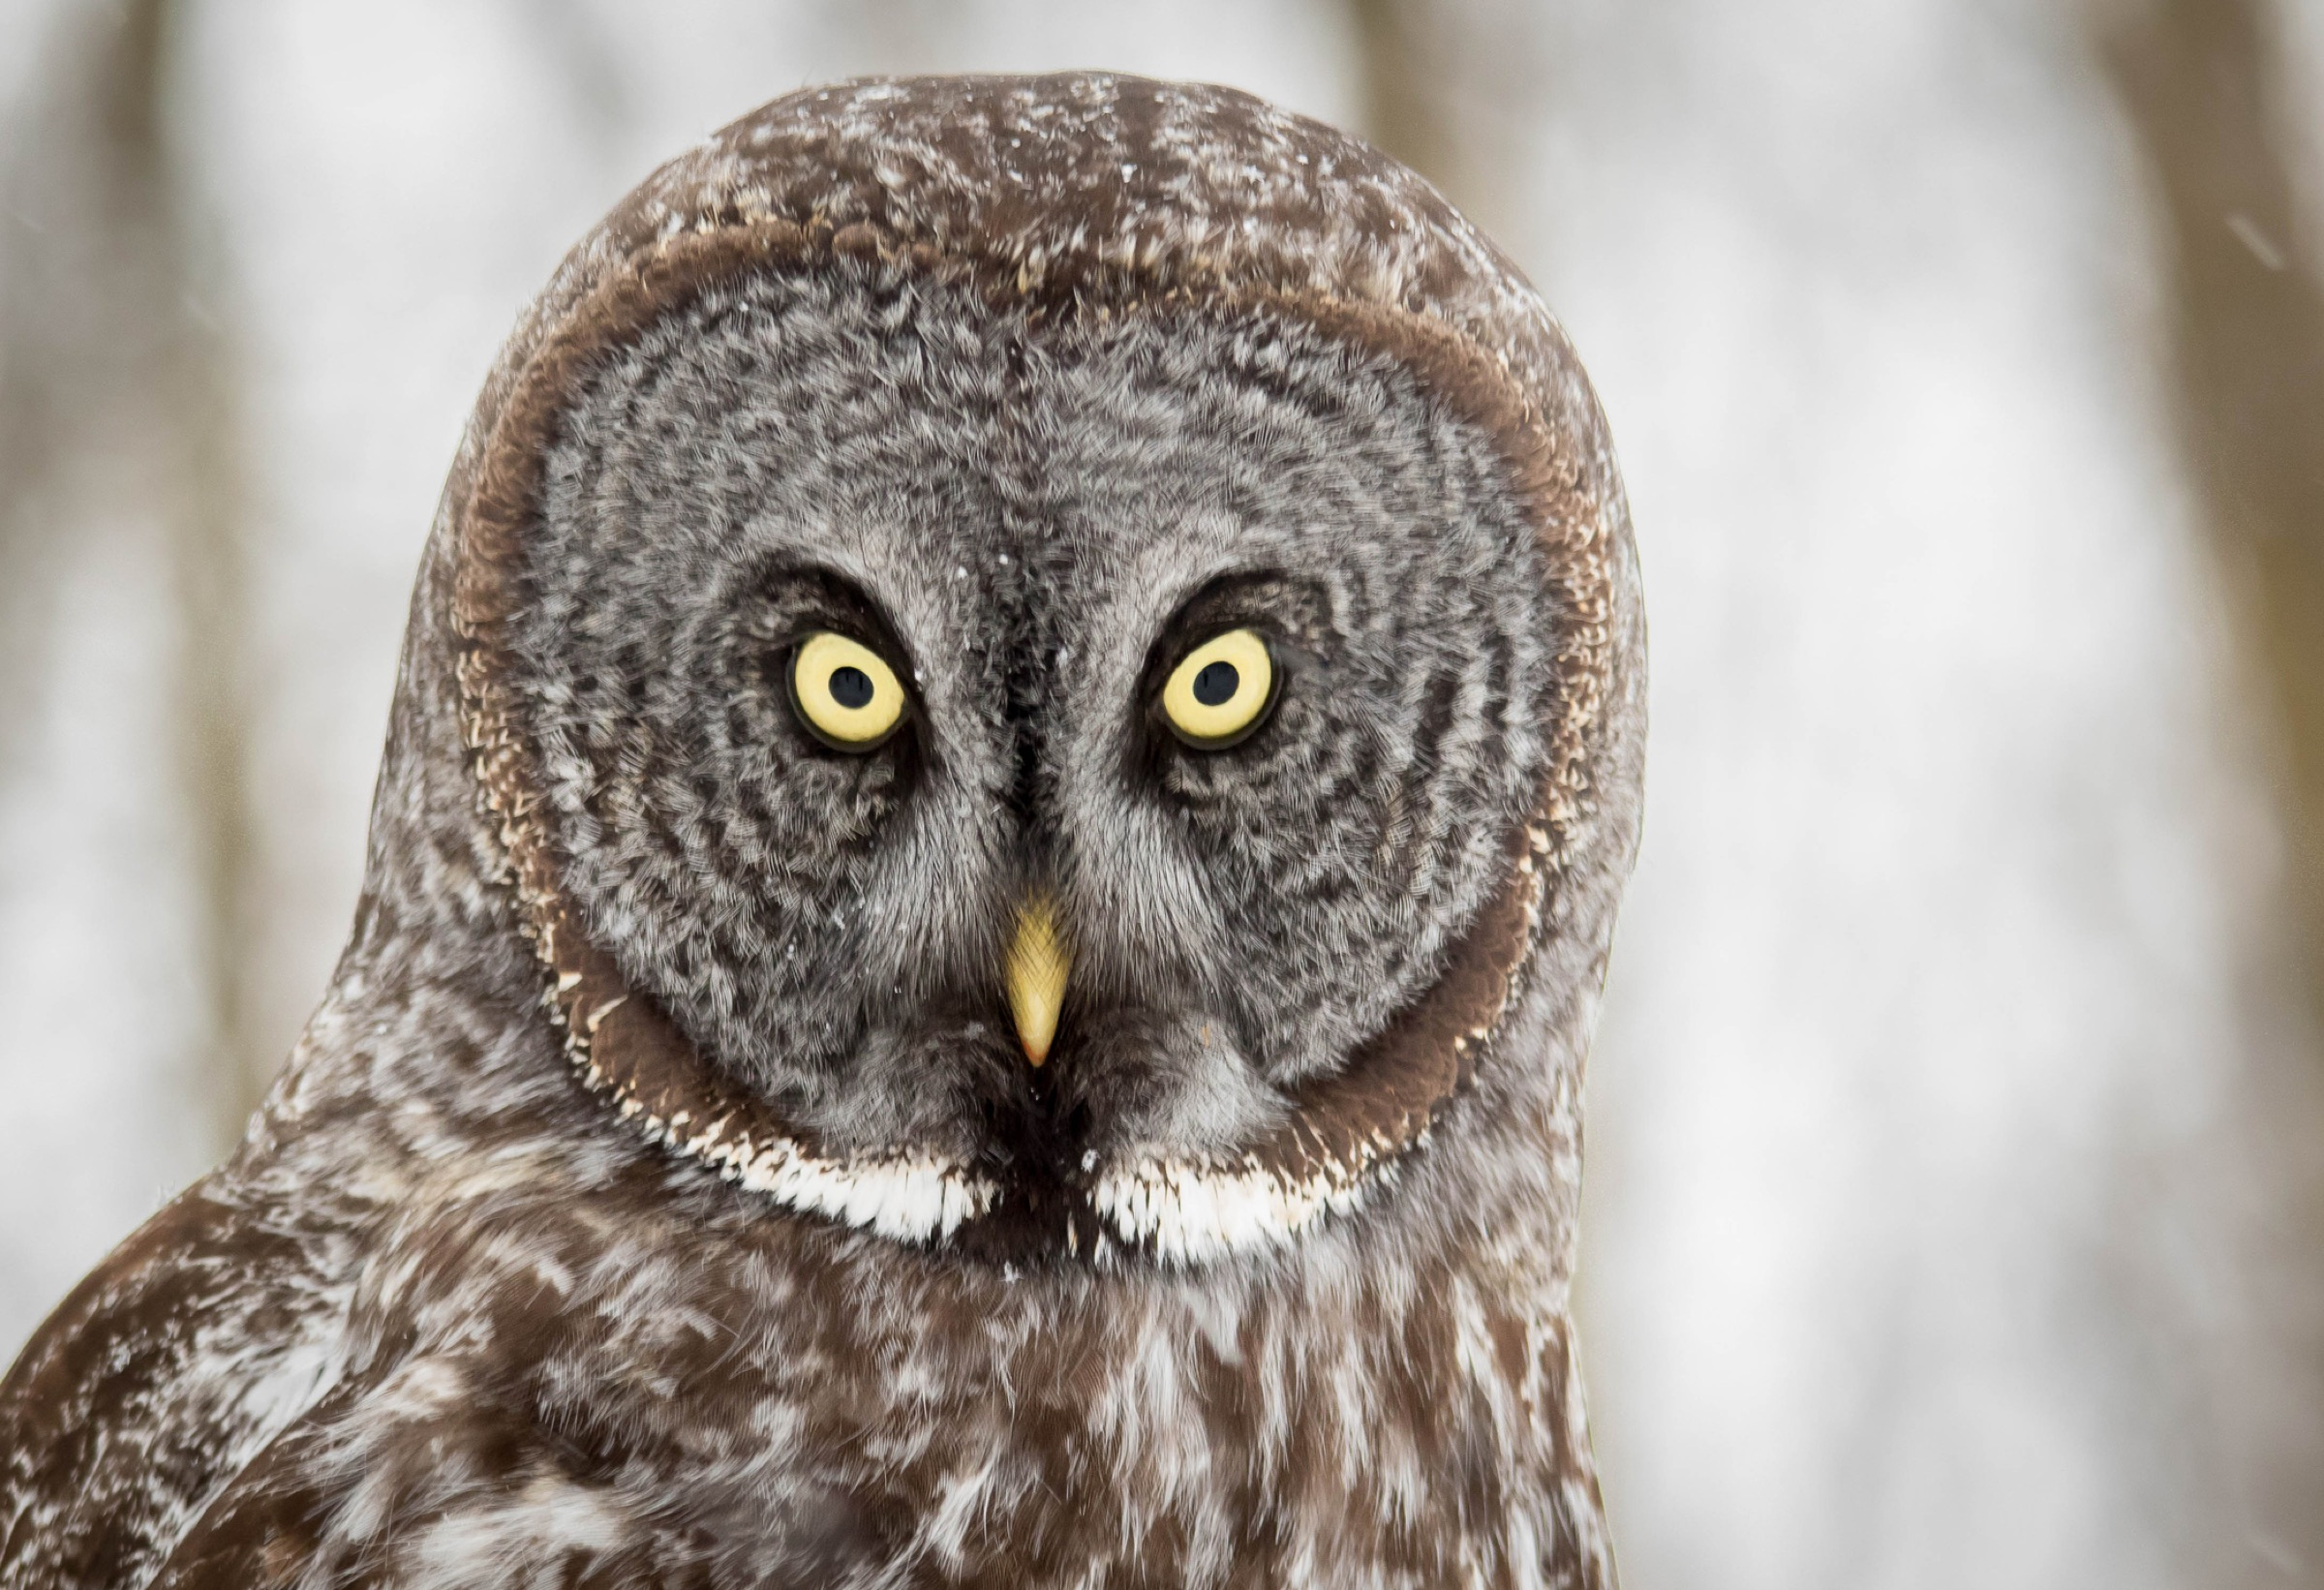 The great grey owl (Strix nebulosa), a top predator in the region, is a sign of a healthy ecosystem. Photograph by fireman23/Getty